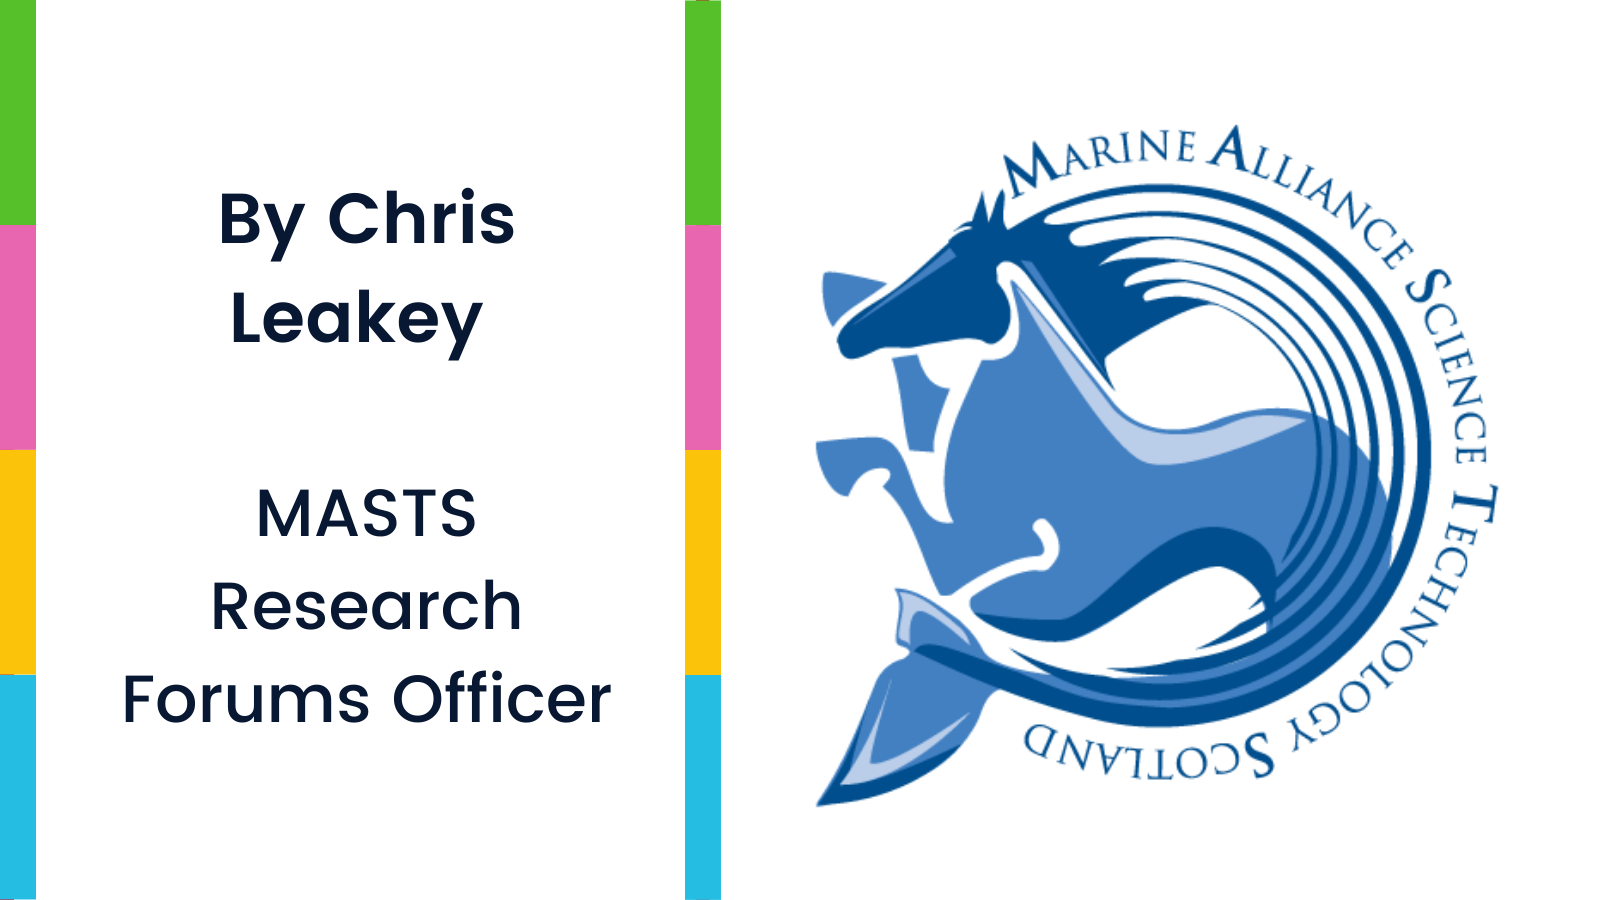 By Chris Leakey, MASTS Research Forums Officer